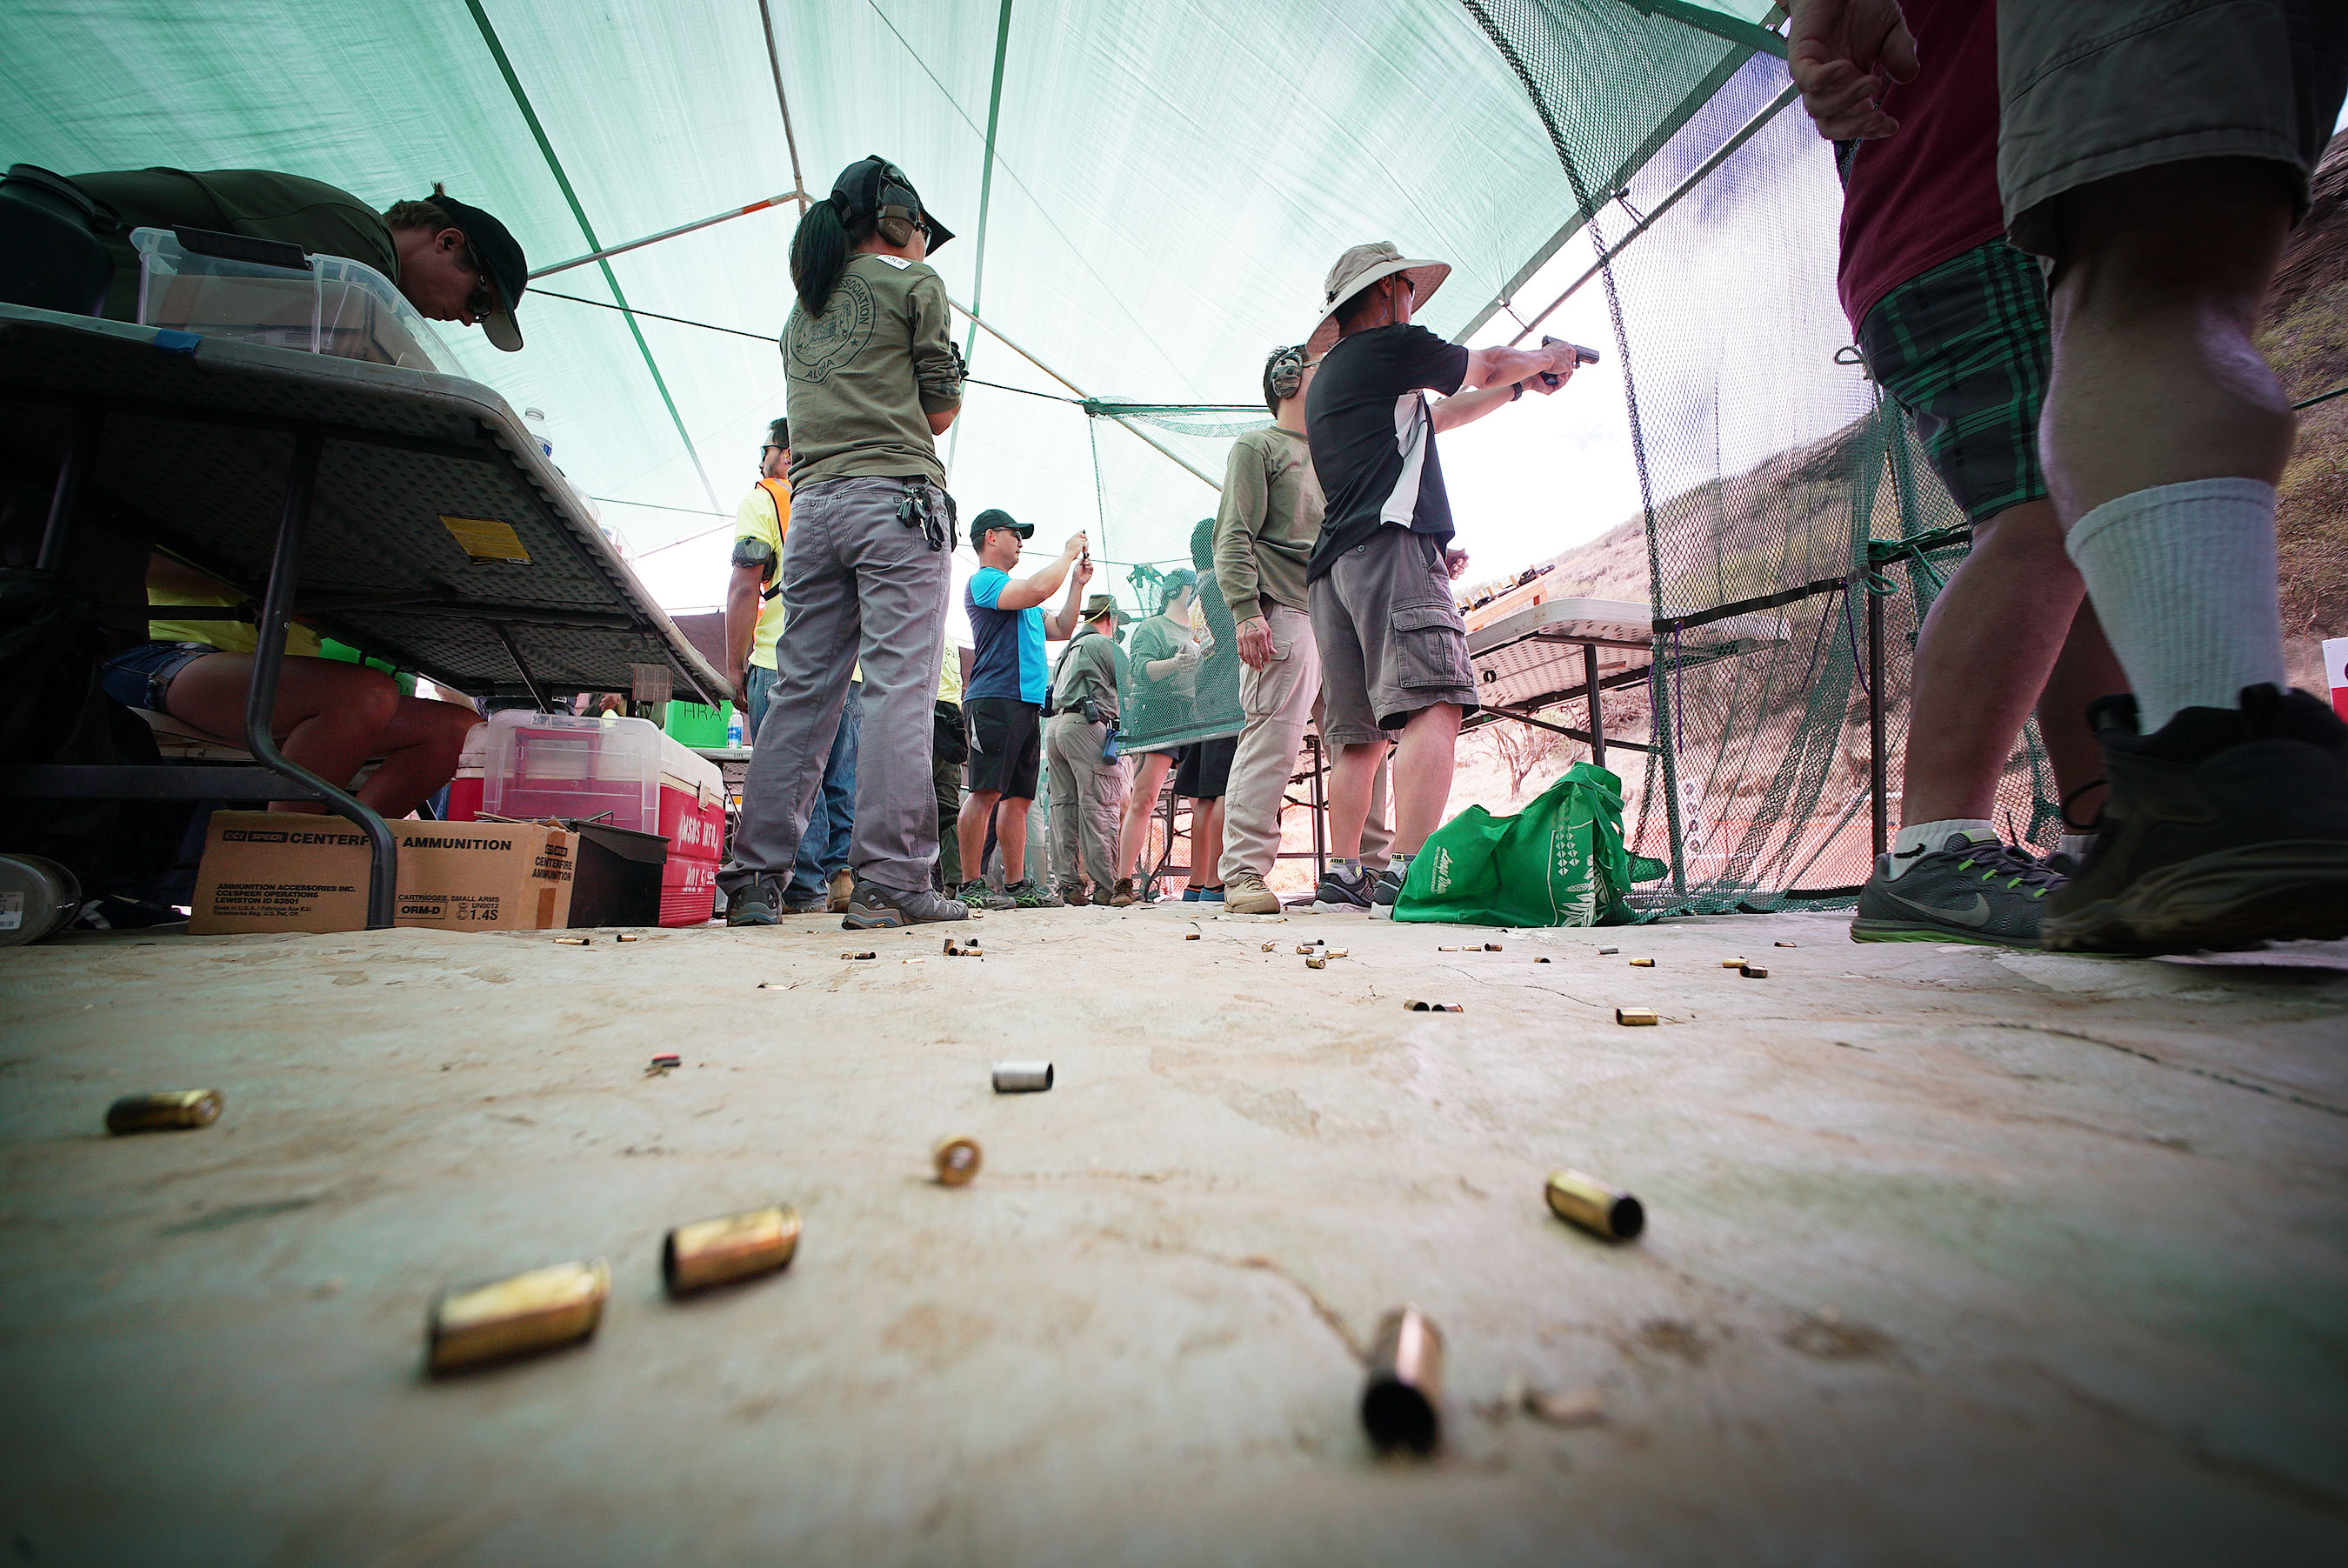 <p>Spentbullet casings littered the ground as visitors fired a variety of weapons.</p>